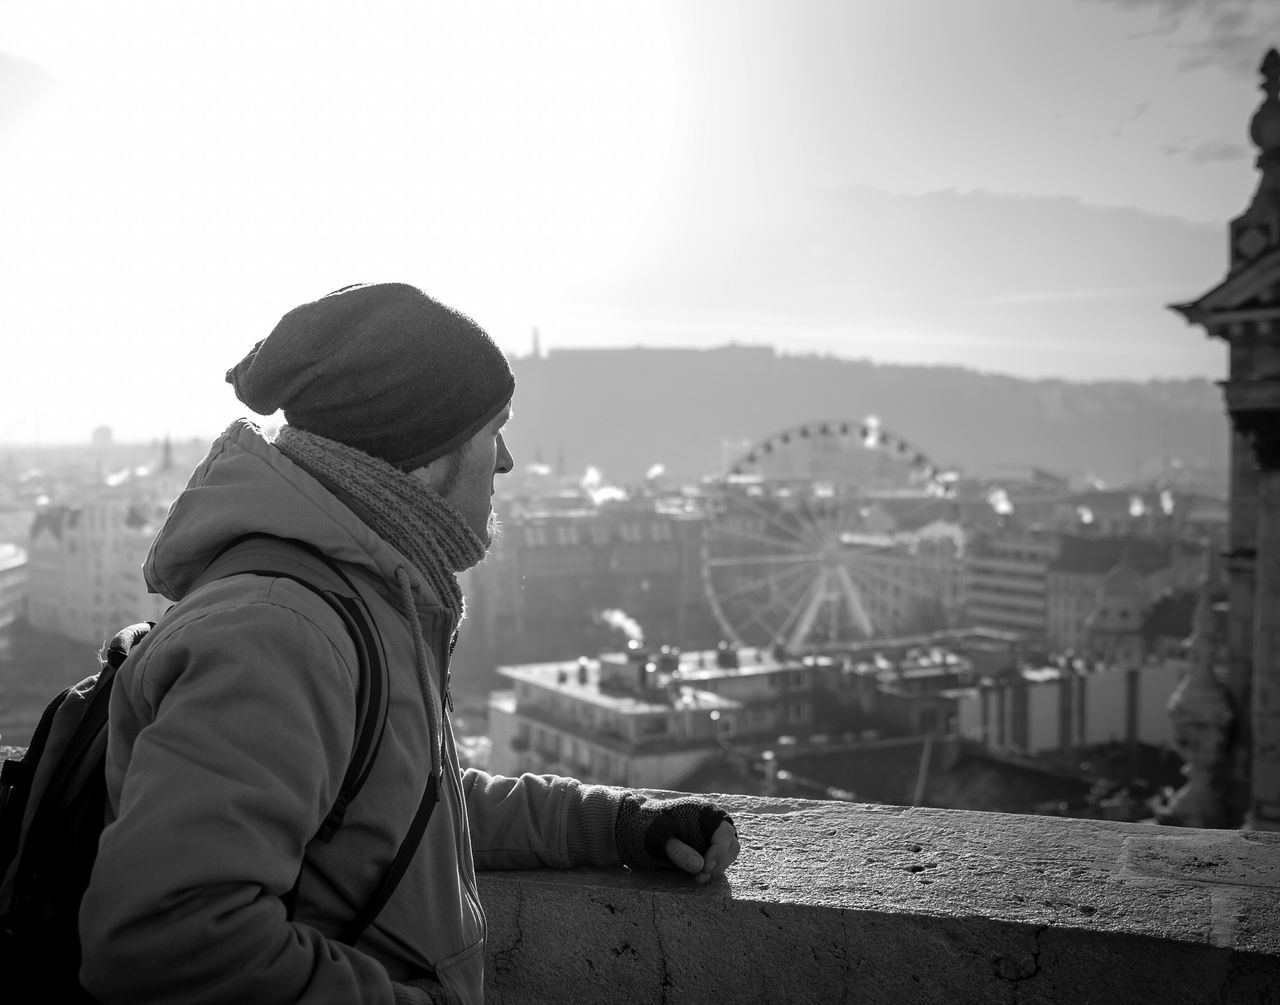 B&w Street Photography Streetphotography Selfportrait Portrait Landscape Canon Canonphotography Budapest Blackandwhite Nofilter Enjoying The View